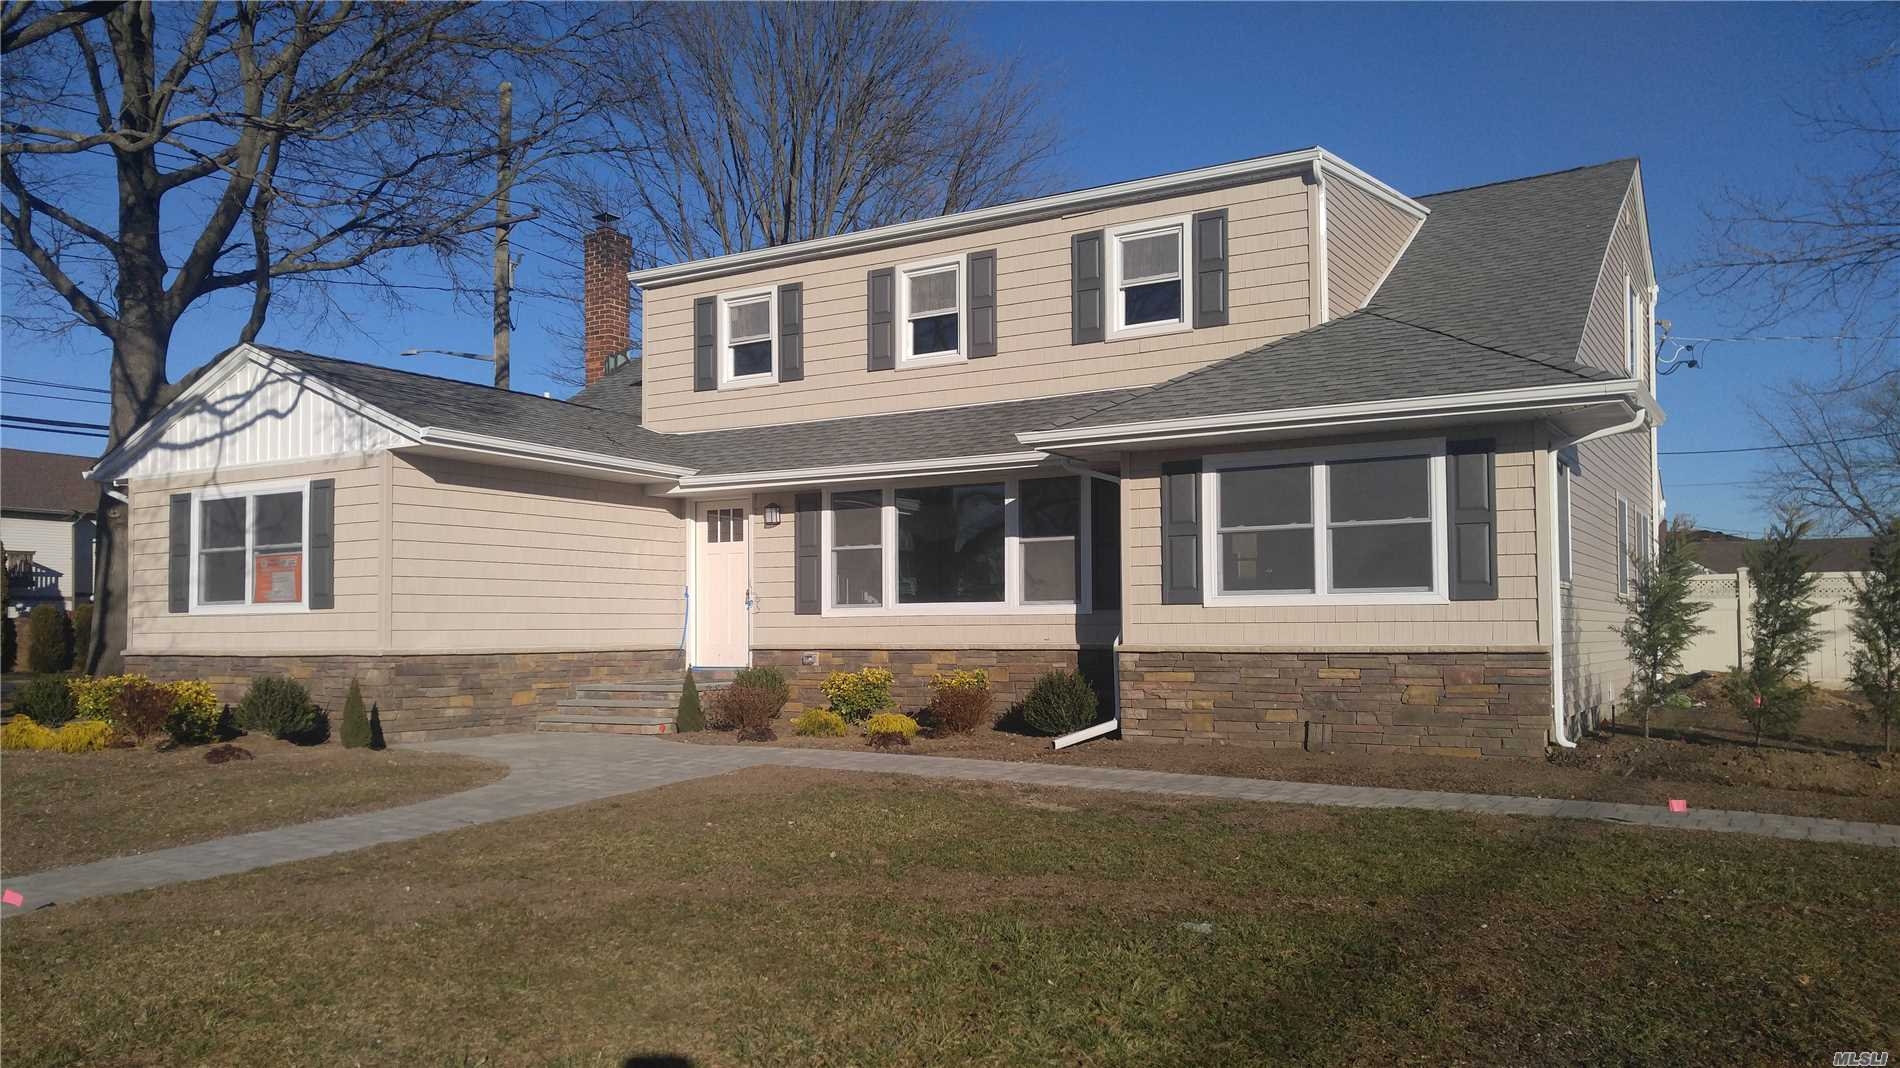 Large Colonial Totally Redone From Top To Bottom Zoning For Commercial Use, Live And Work From Your Own Home Or Bring Family Members Open Floor Plan, Master Suite On First Floor And Second Floor, Beautiful New Kitchen With Large Island And Granite Counter Tops, Stainless Steel Appliances, Hardwood Throughout, New 200 Amp Electric, New Gas Hydronic Heating System, Full Finished Basement, 30Ft Patio Pavers, New Siding, , Many Option, Act Now Maybe Time To Pick Your Own Colors Photos Used For Similarity Only